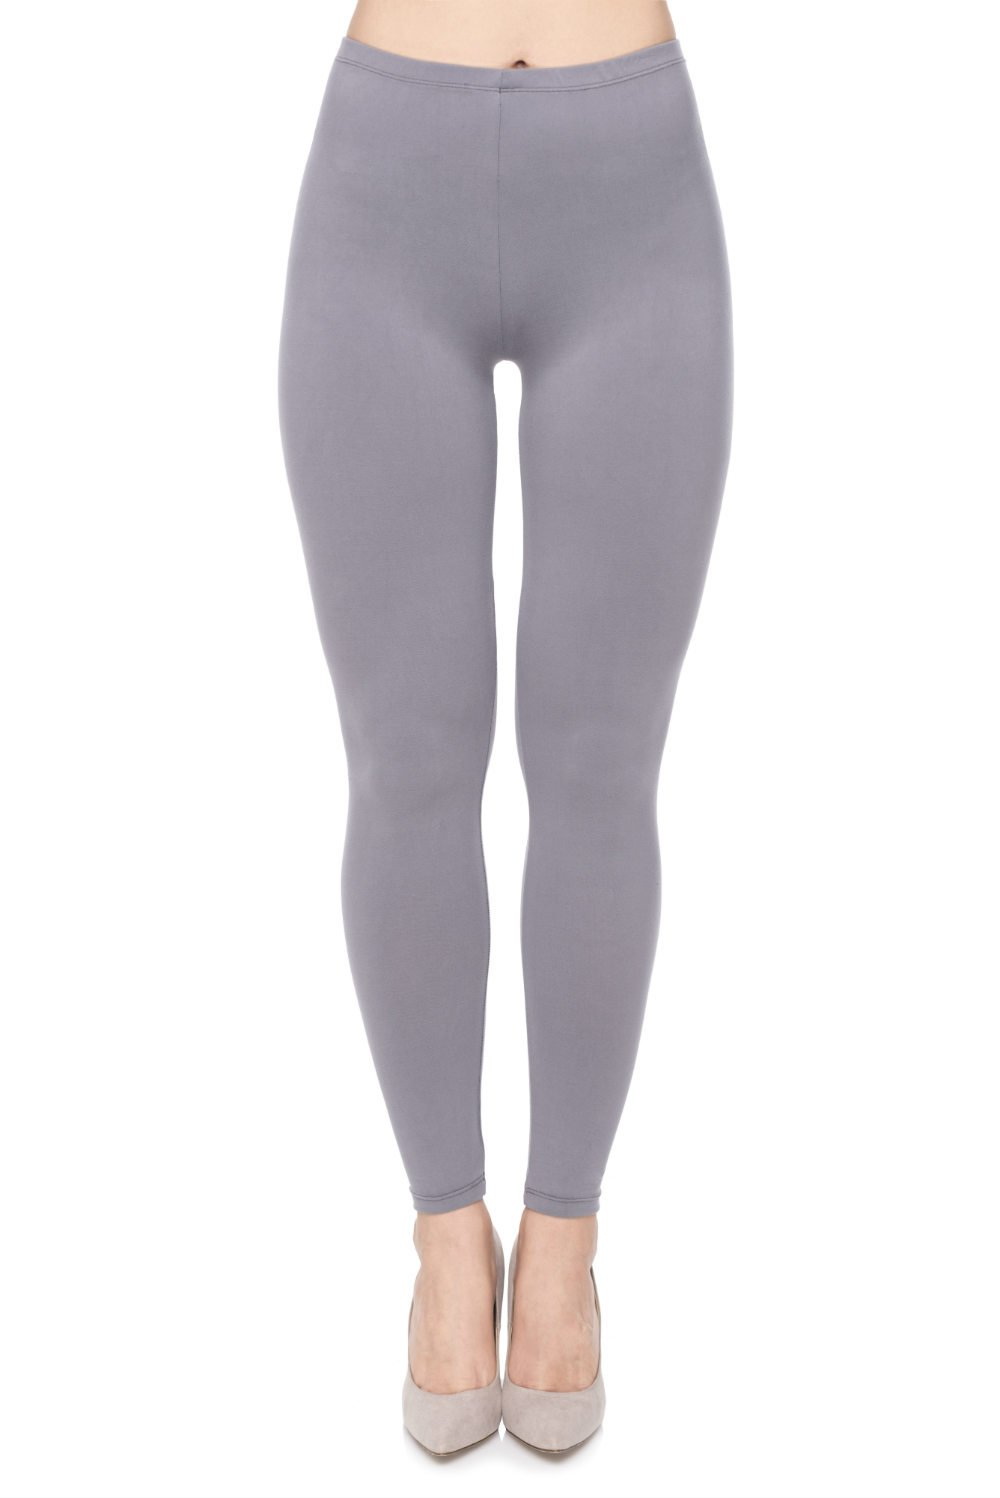 PINK PLOT Basic Printed Leggings Patterned High Elasticity Pants for Women Girls Extra Plus-Fit 3x-5x Grey